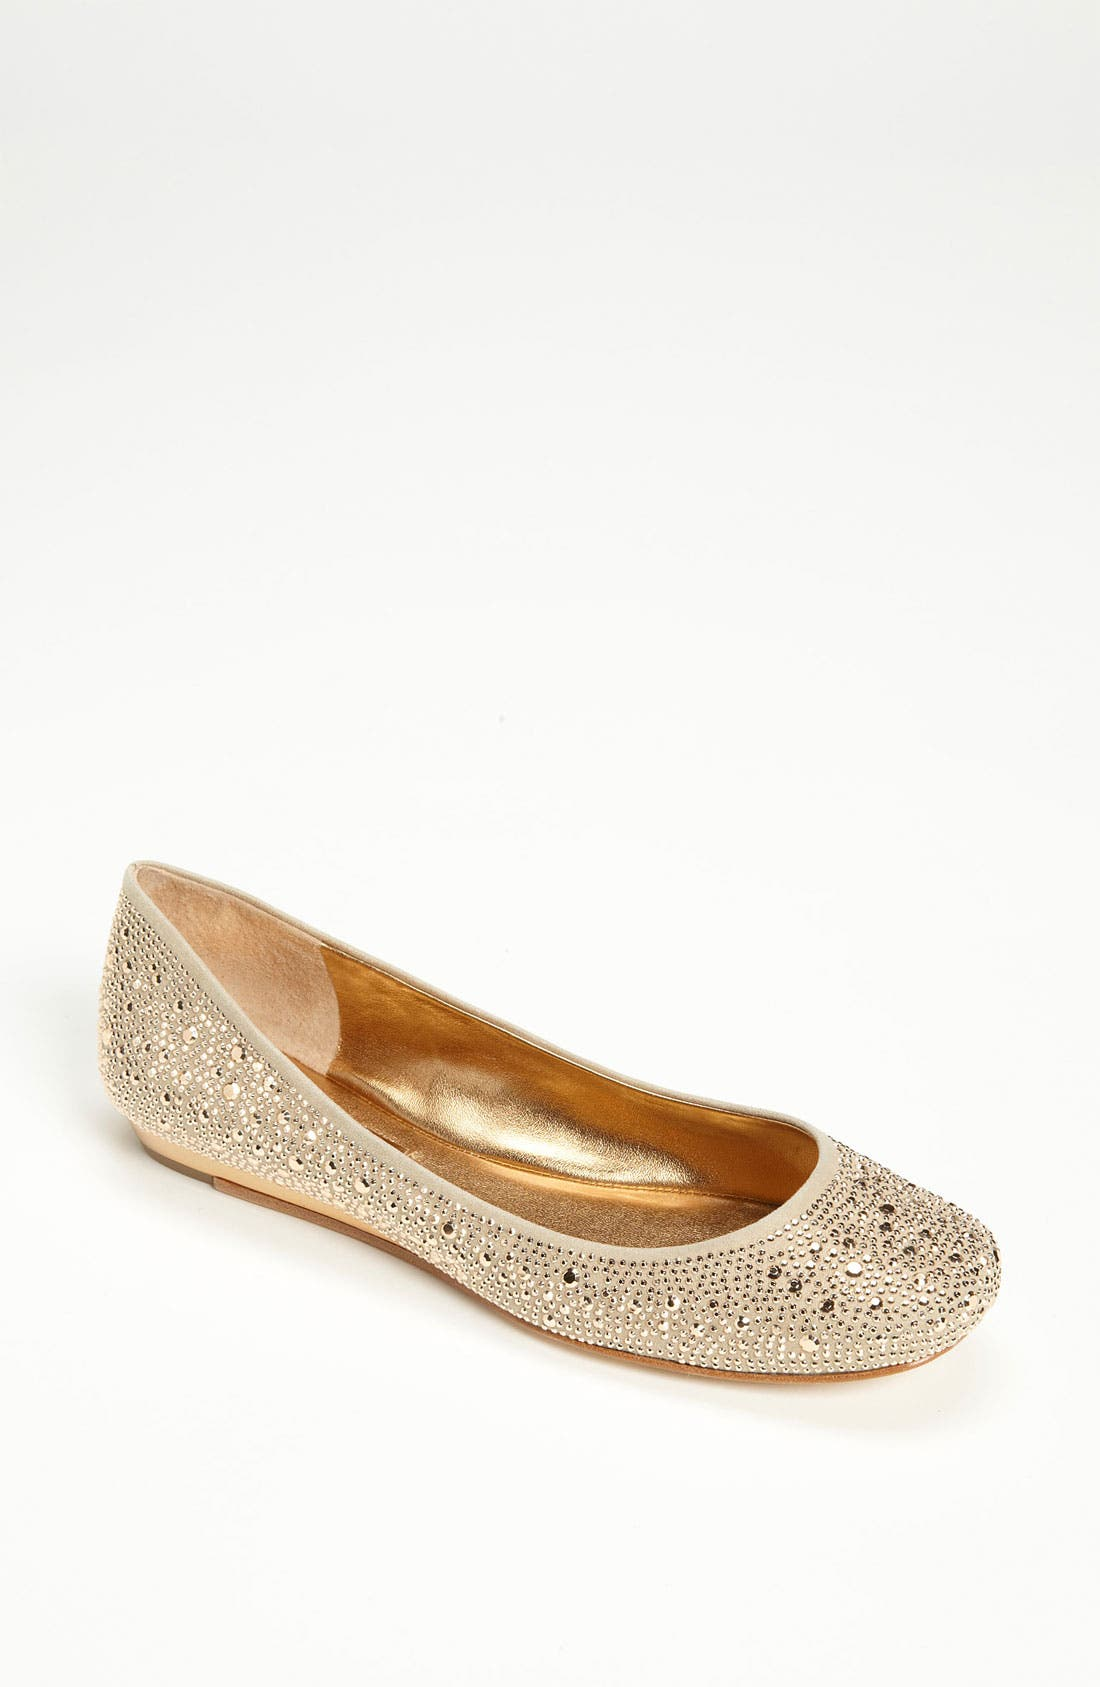 Alternate Image 1 Selected - BCBGMAXAZRIA 'Misha' Flat